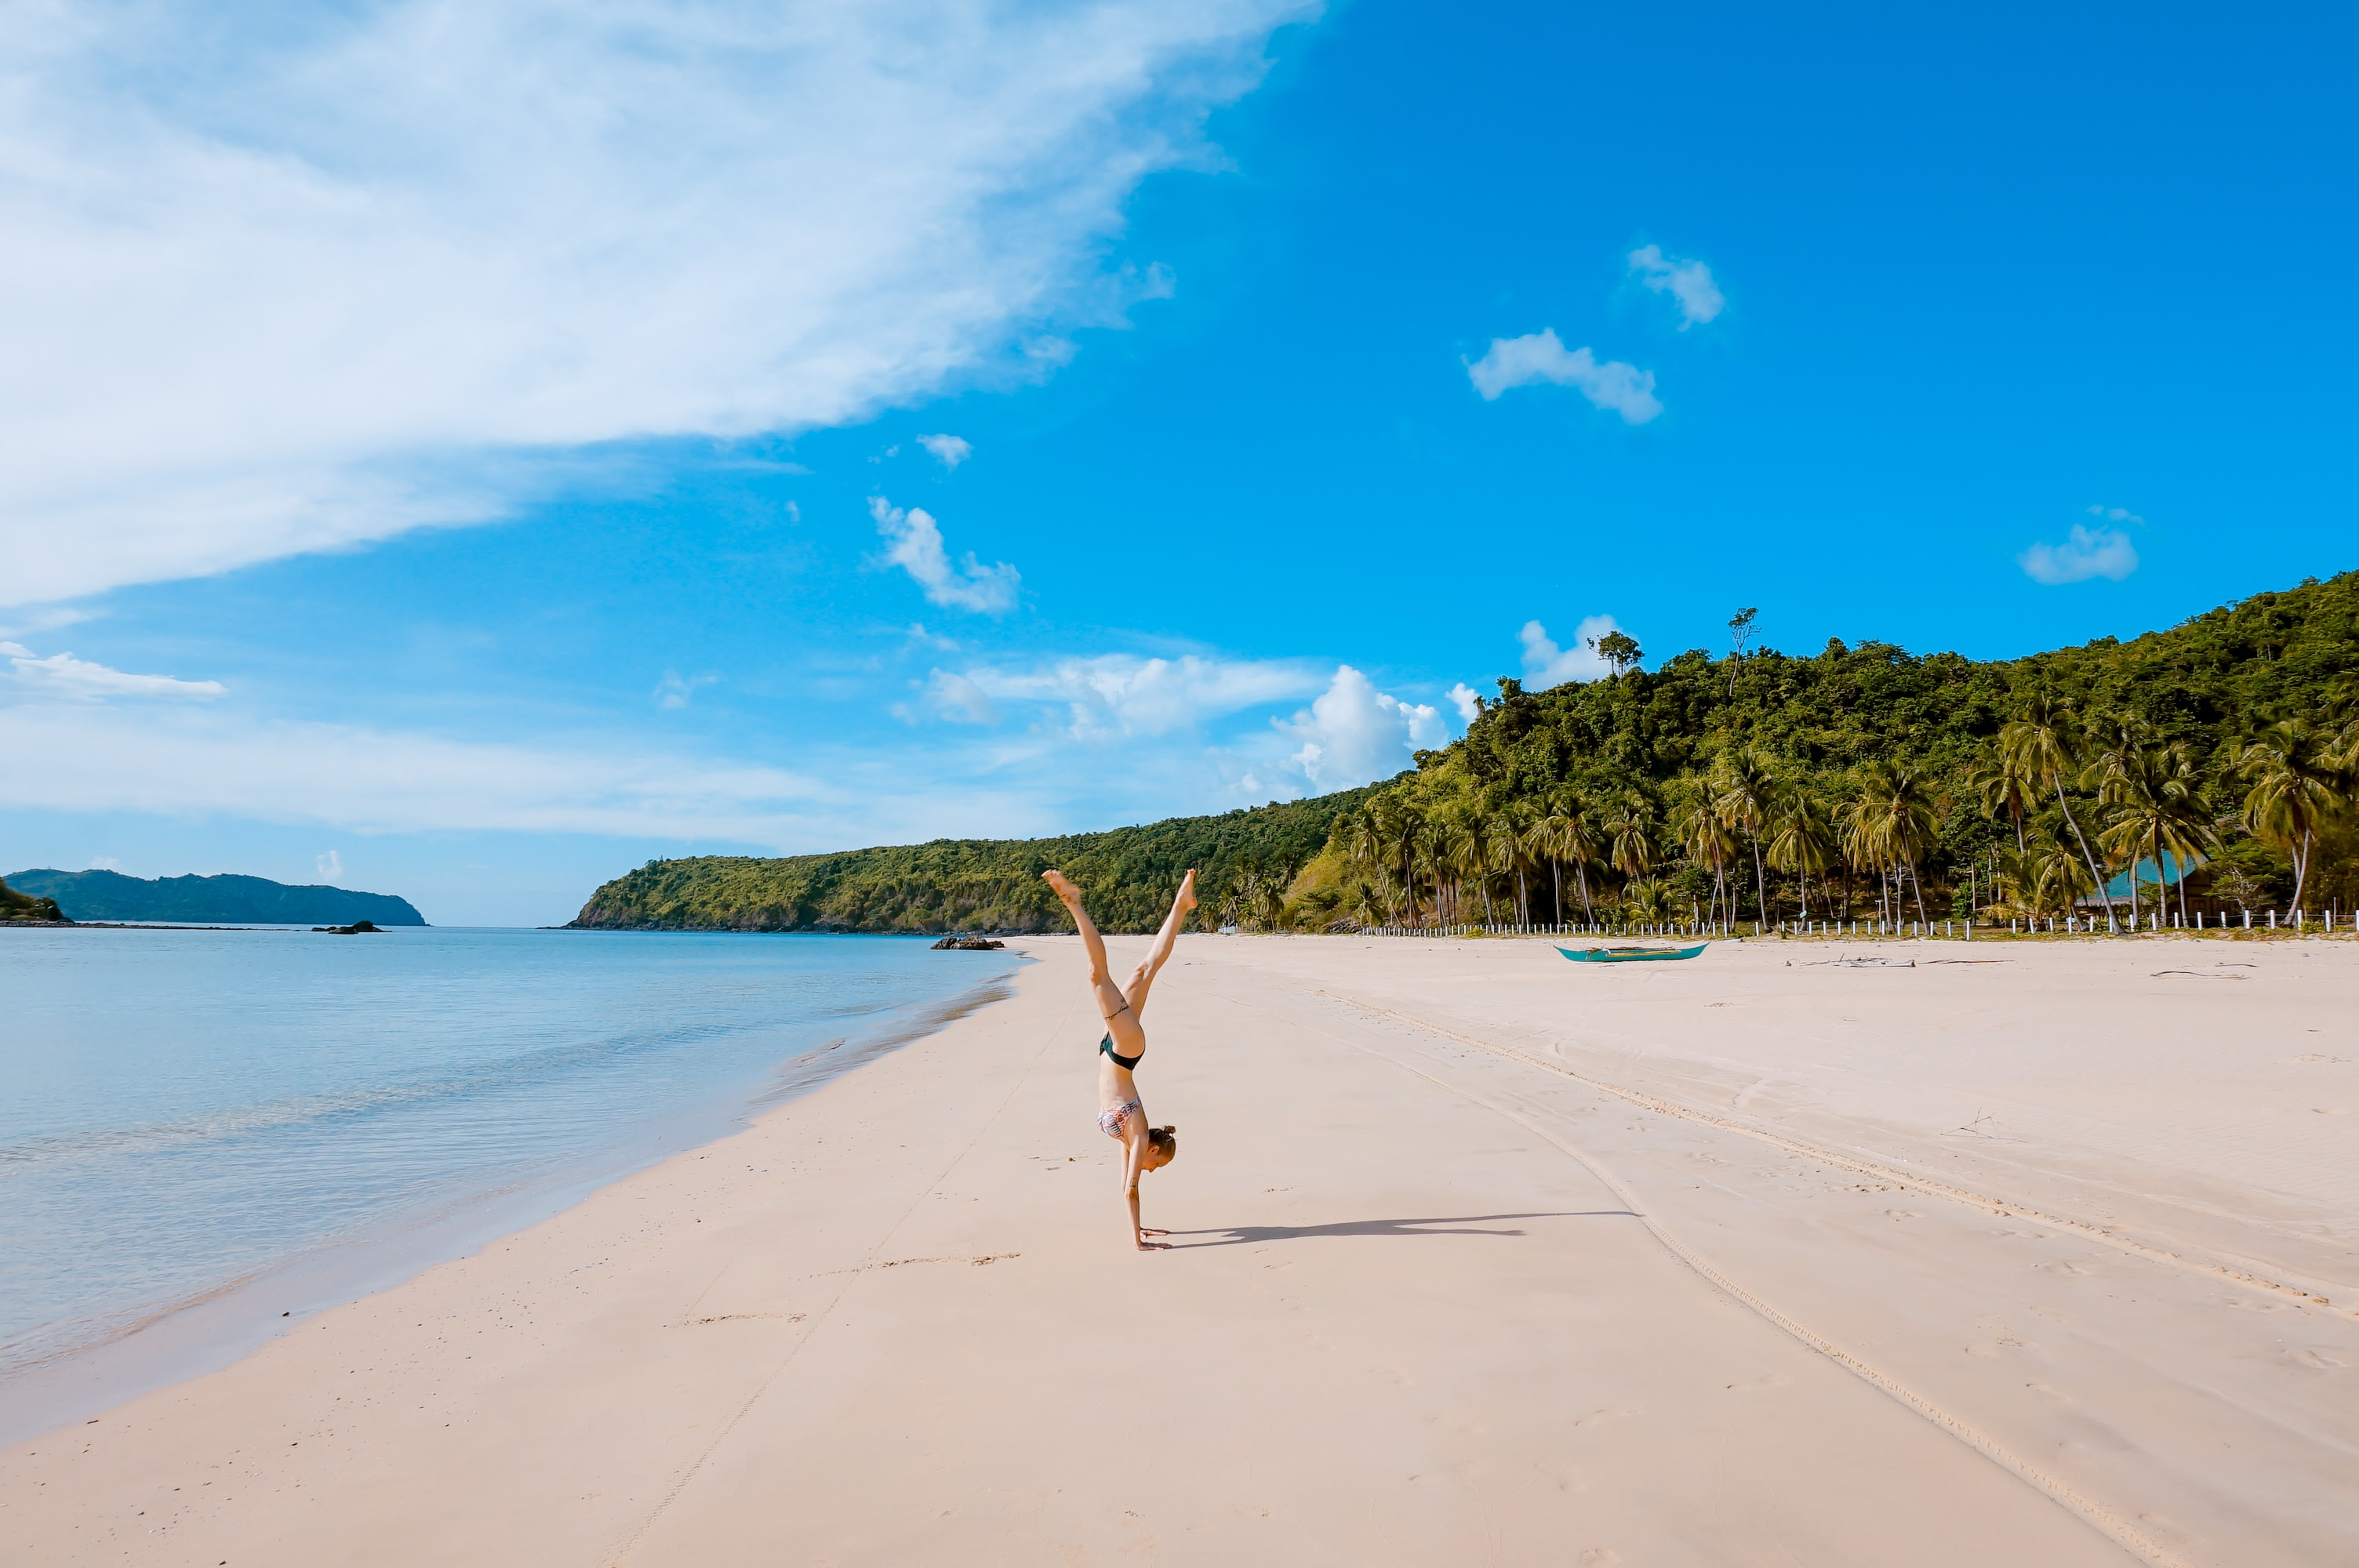 A woman doing a handstand on a sunny day on the beach in Palawan